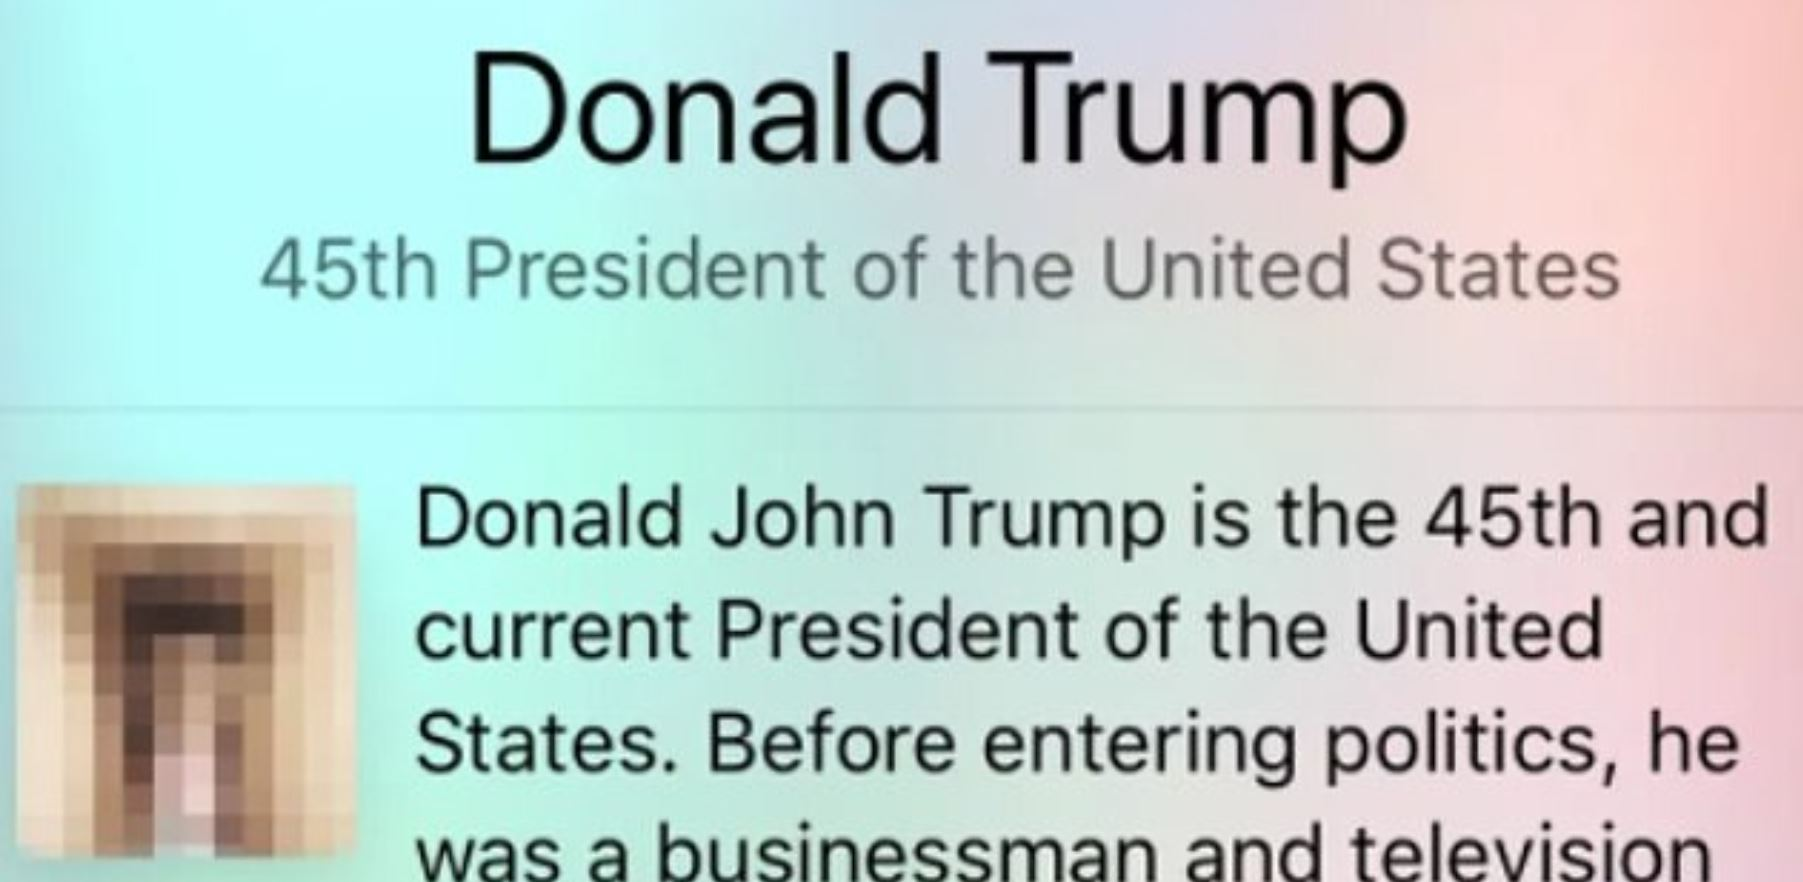 Hackers changed Donald Trump's picture to an image of someone's penis. Credit: Wikipedia